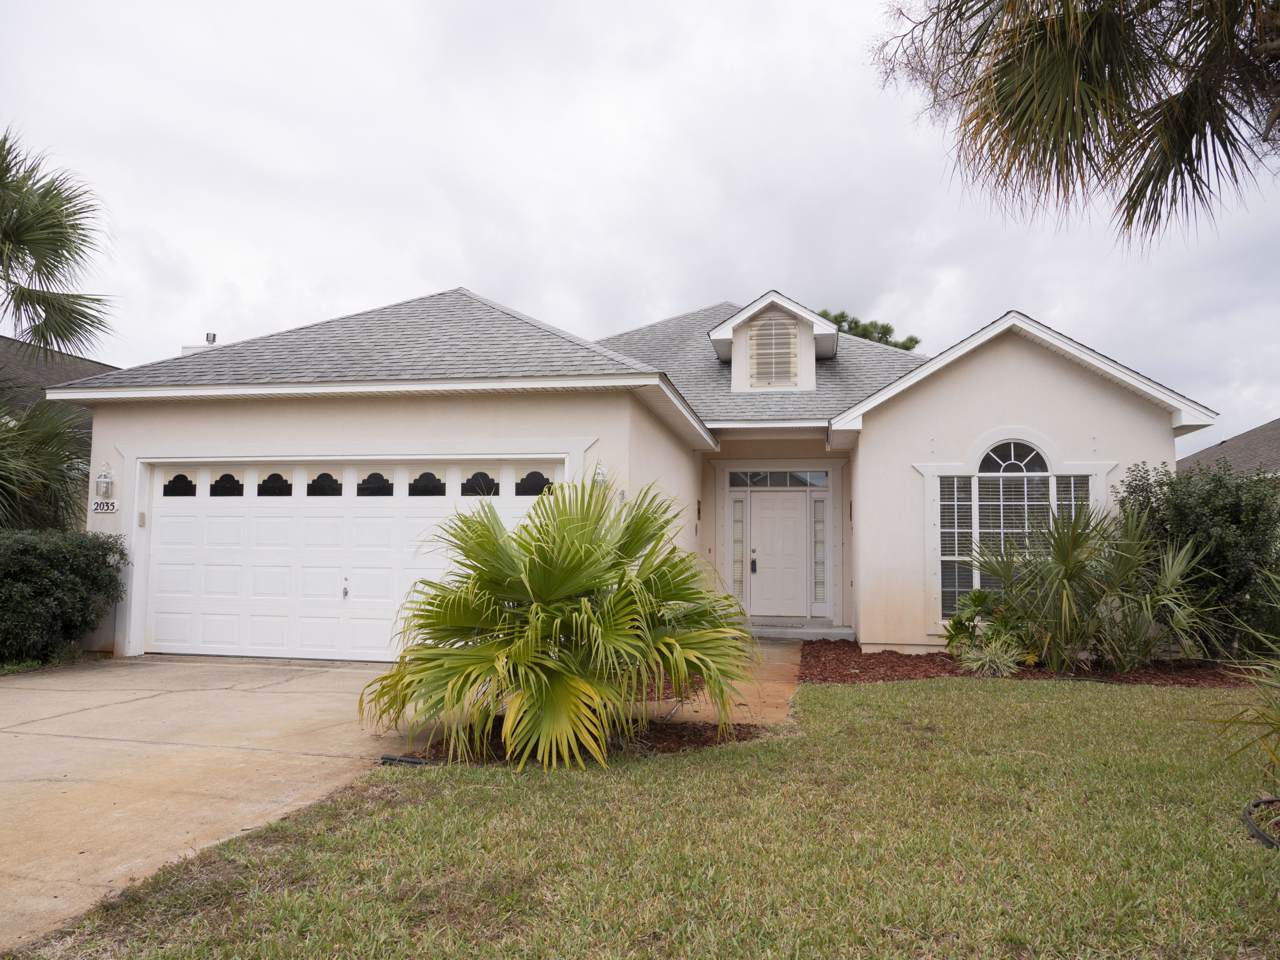 2035 Fountainview Drive - Photo 1